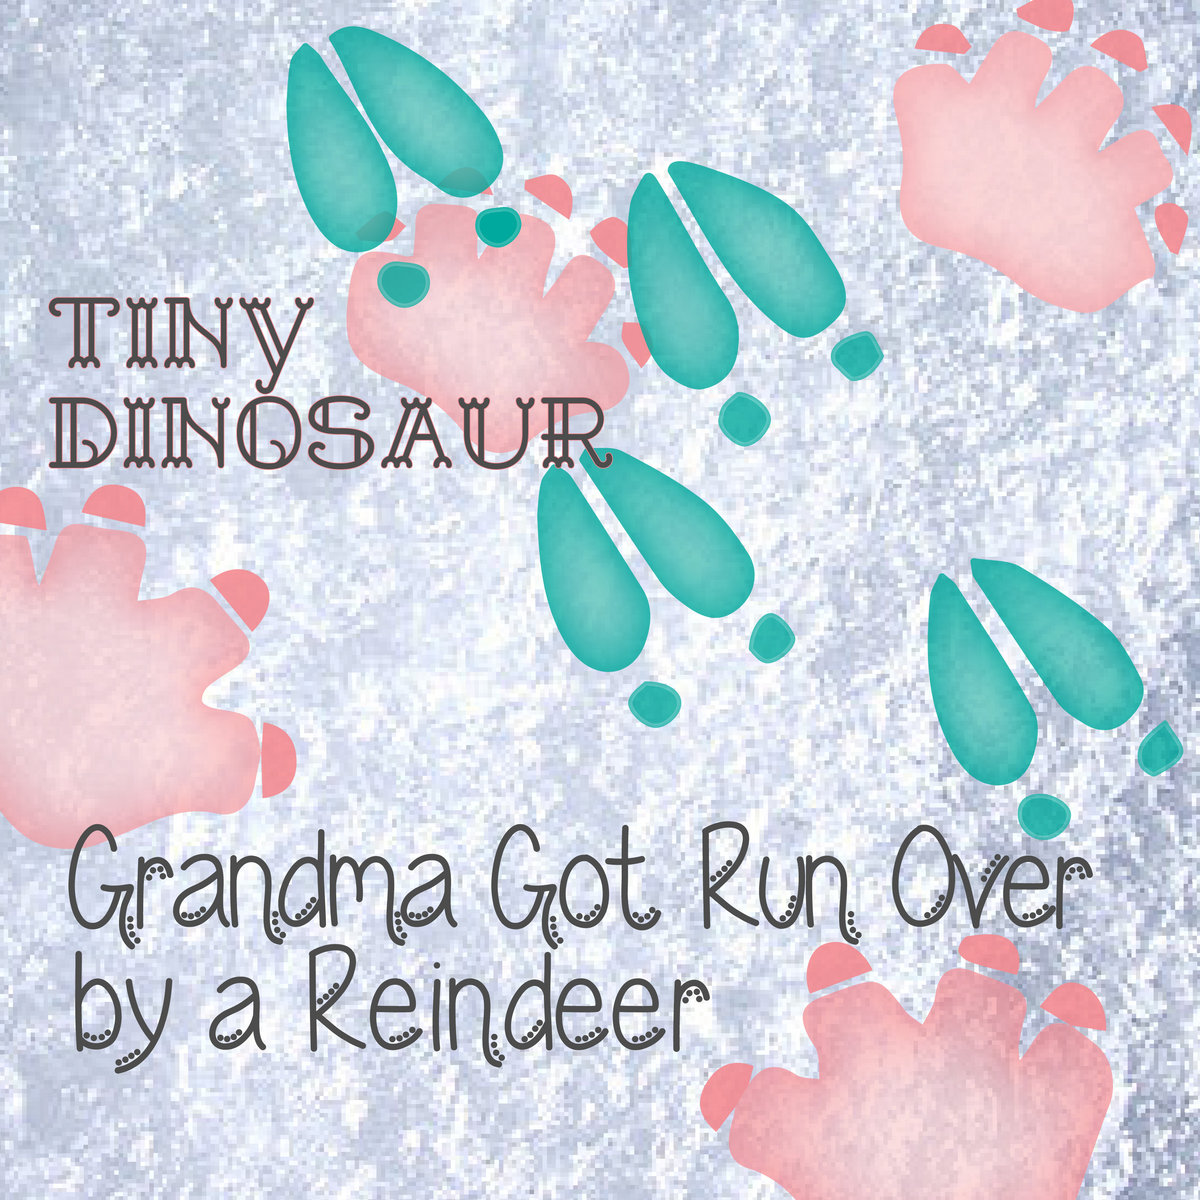 grandma got run over by a reindeer download free